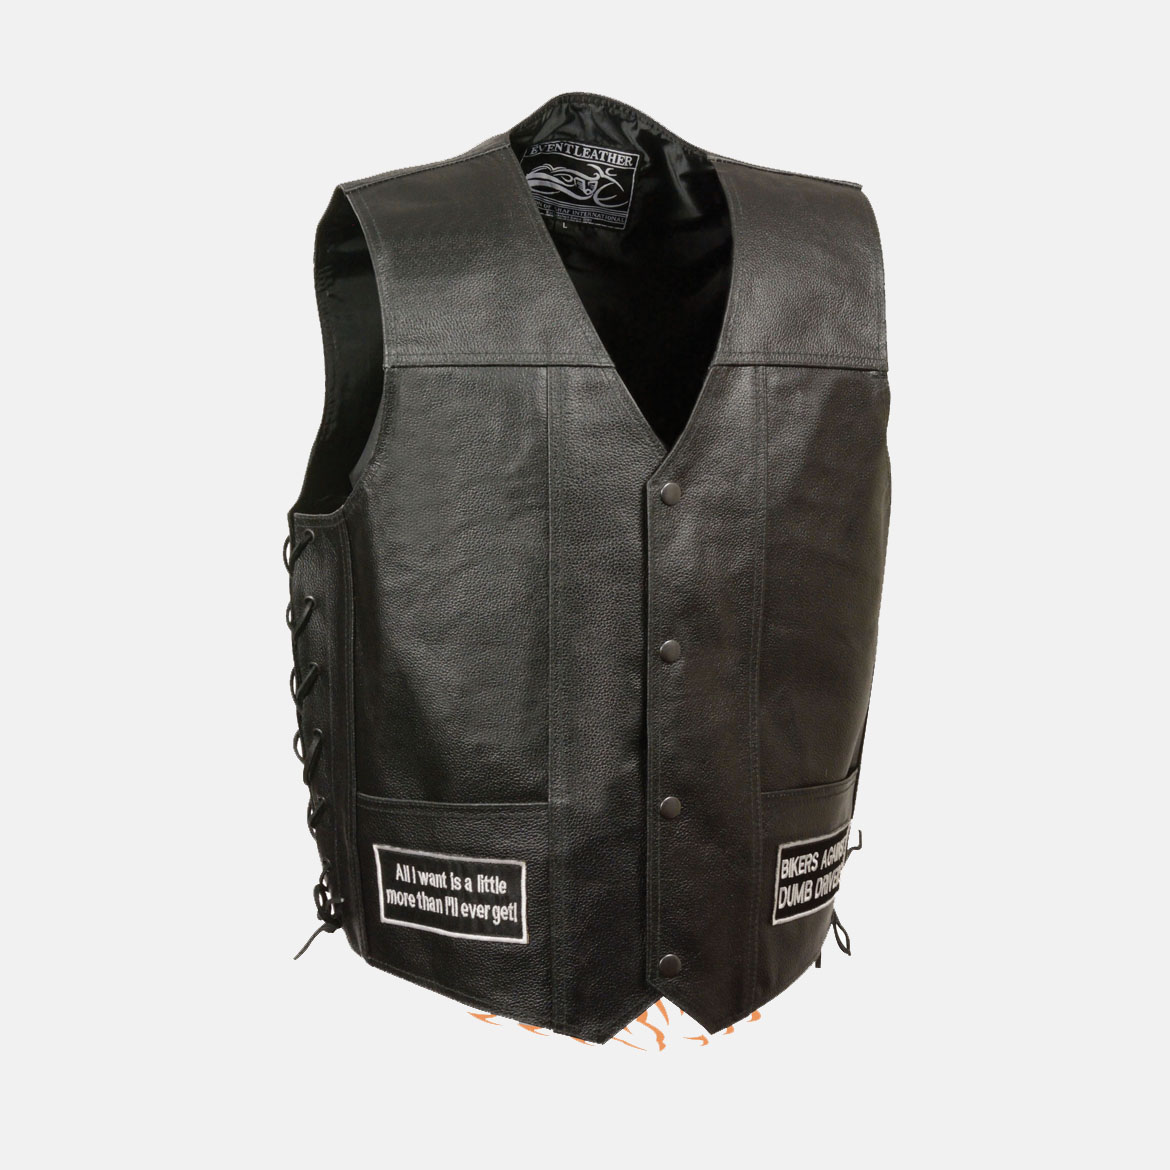 motorcycle Vest with patches